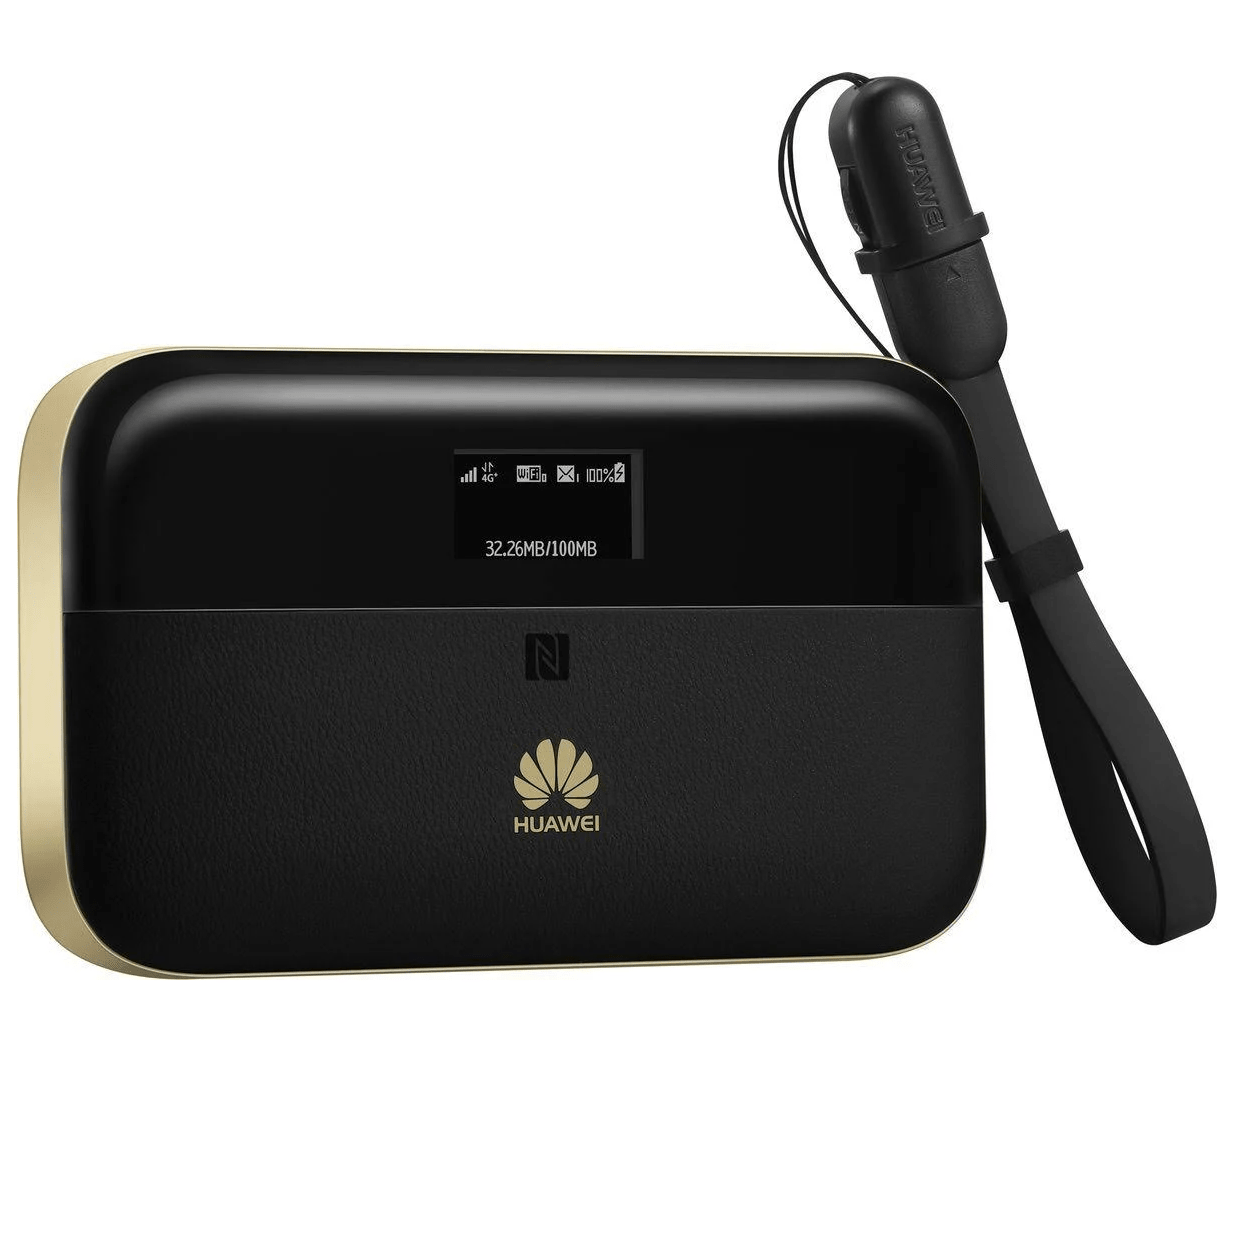 Unlocked Huawei E5885Ls-93A LTE 4G Mobile WiFi Hotspot Router